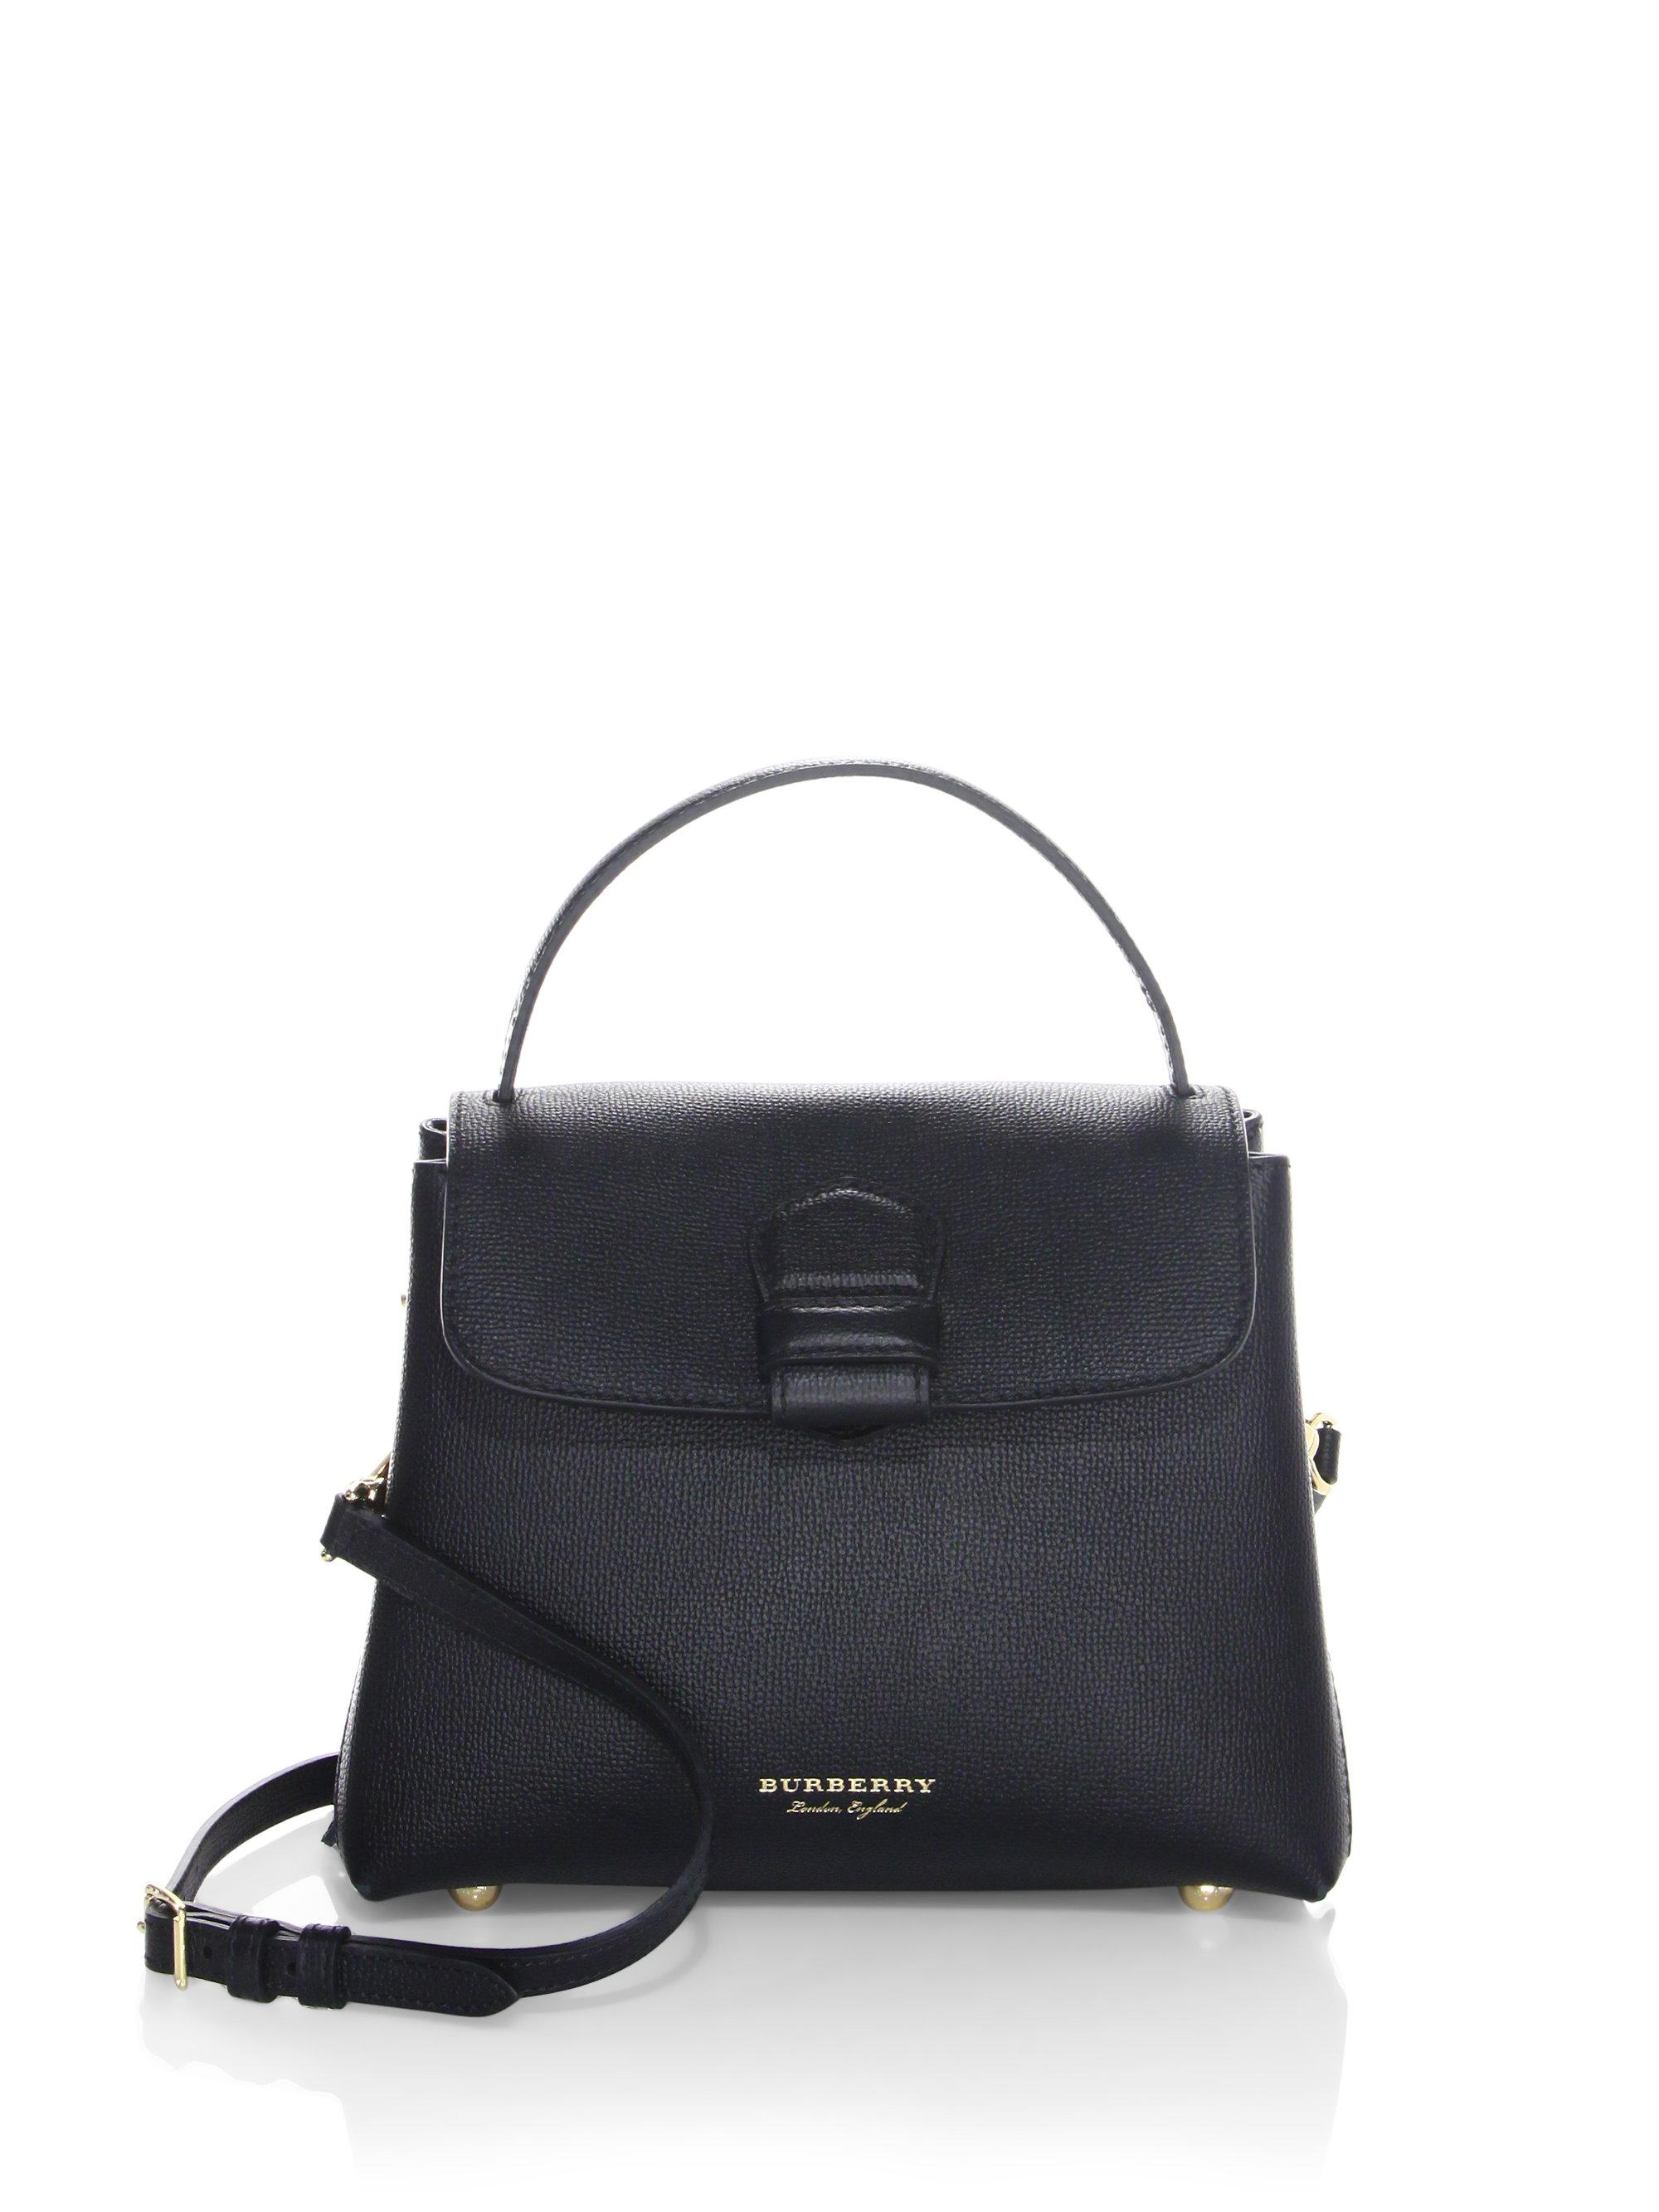 bb1a83f60f9 Burberry Camberley Leather House Check Tote in Black - Lyst